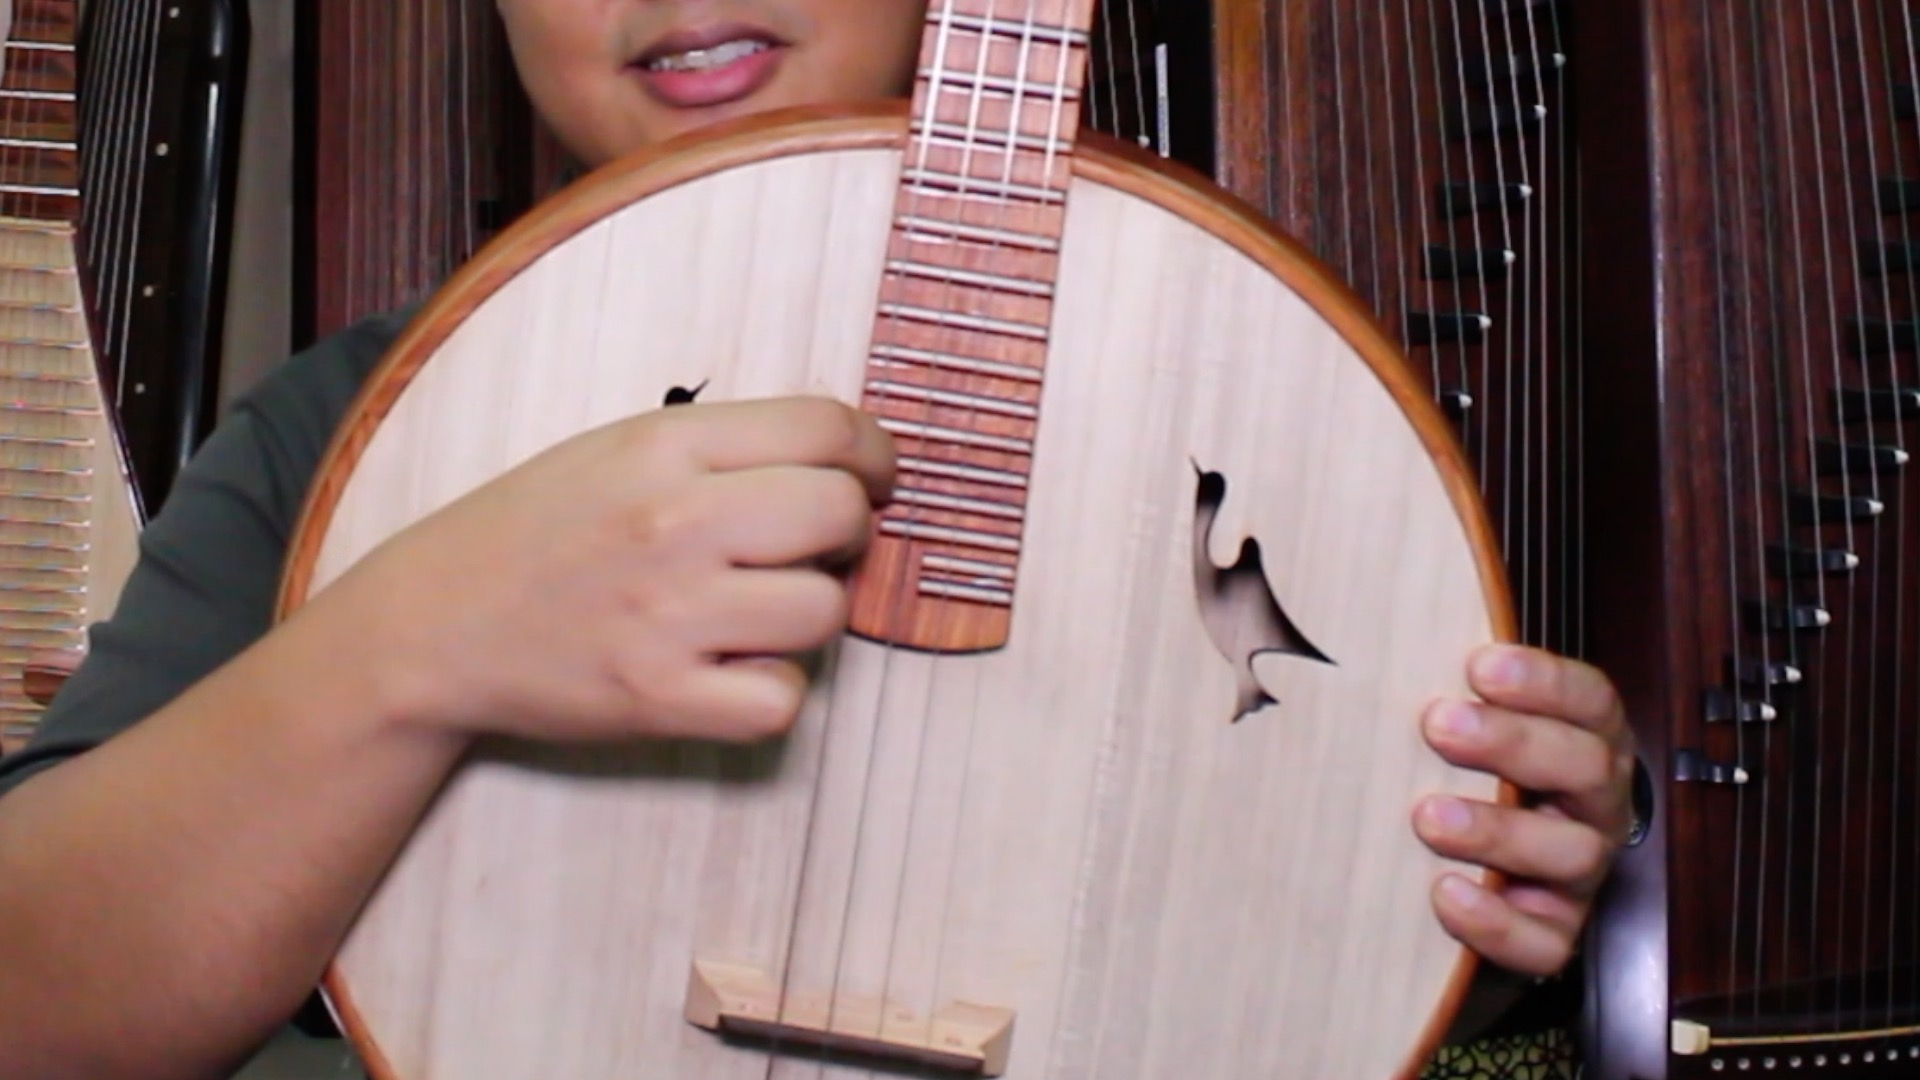 1. Strings placement